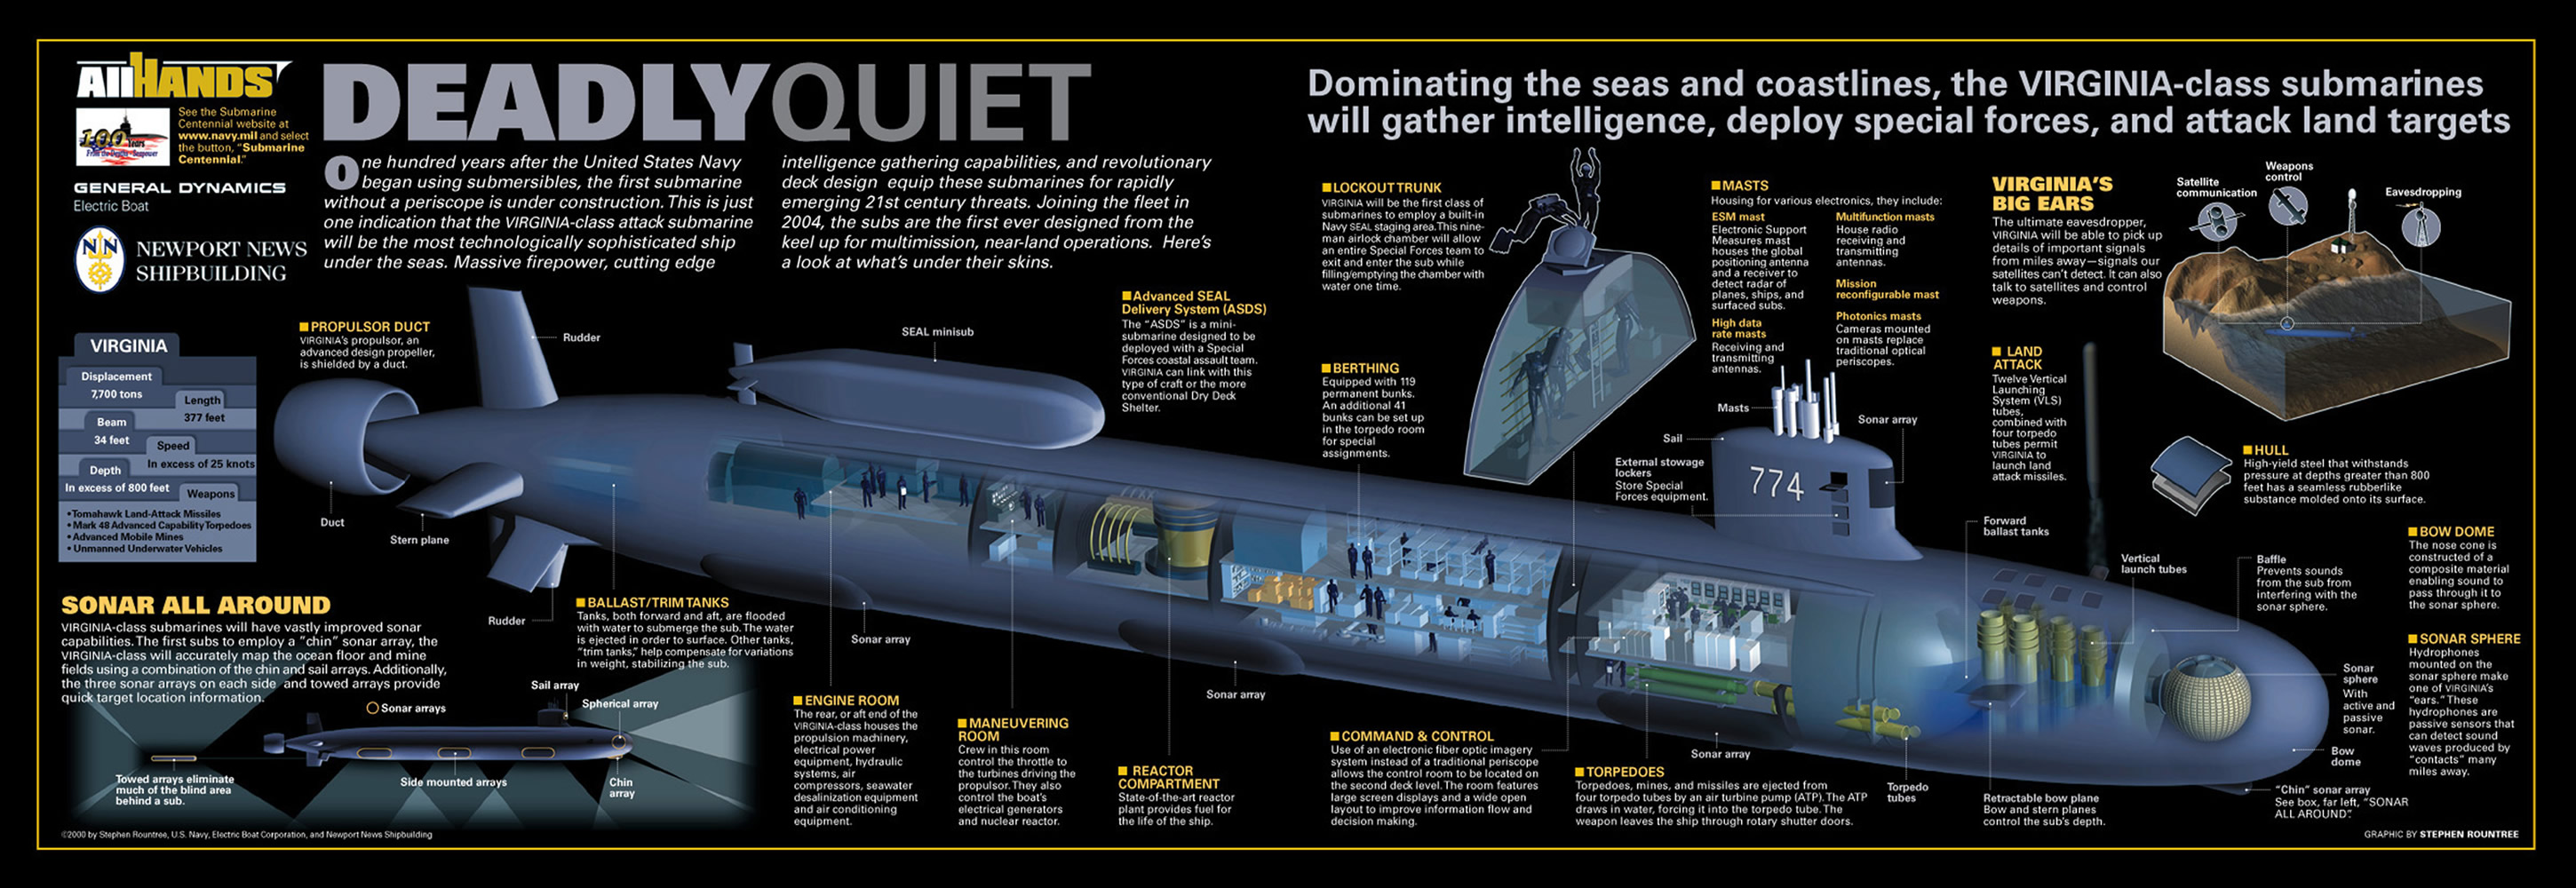 ship_ssn_virginia_class_cutaway_lg1